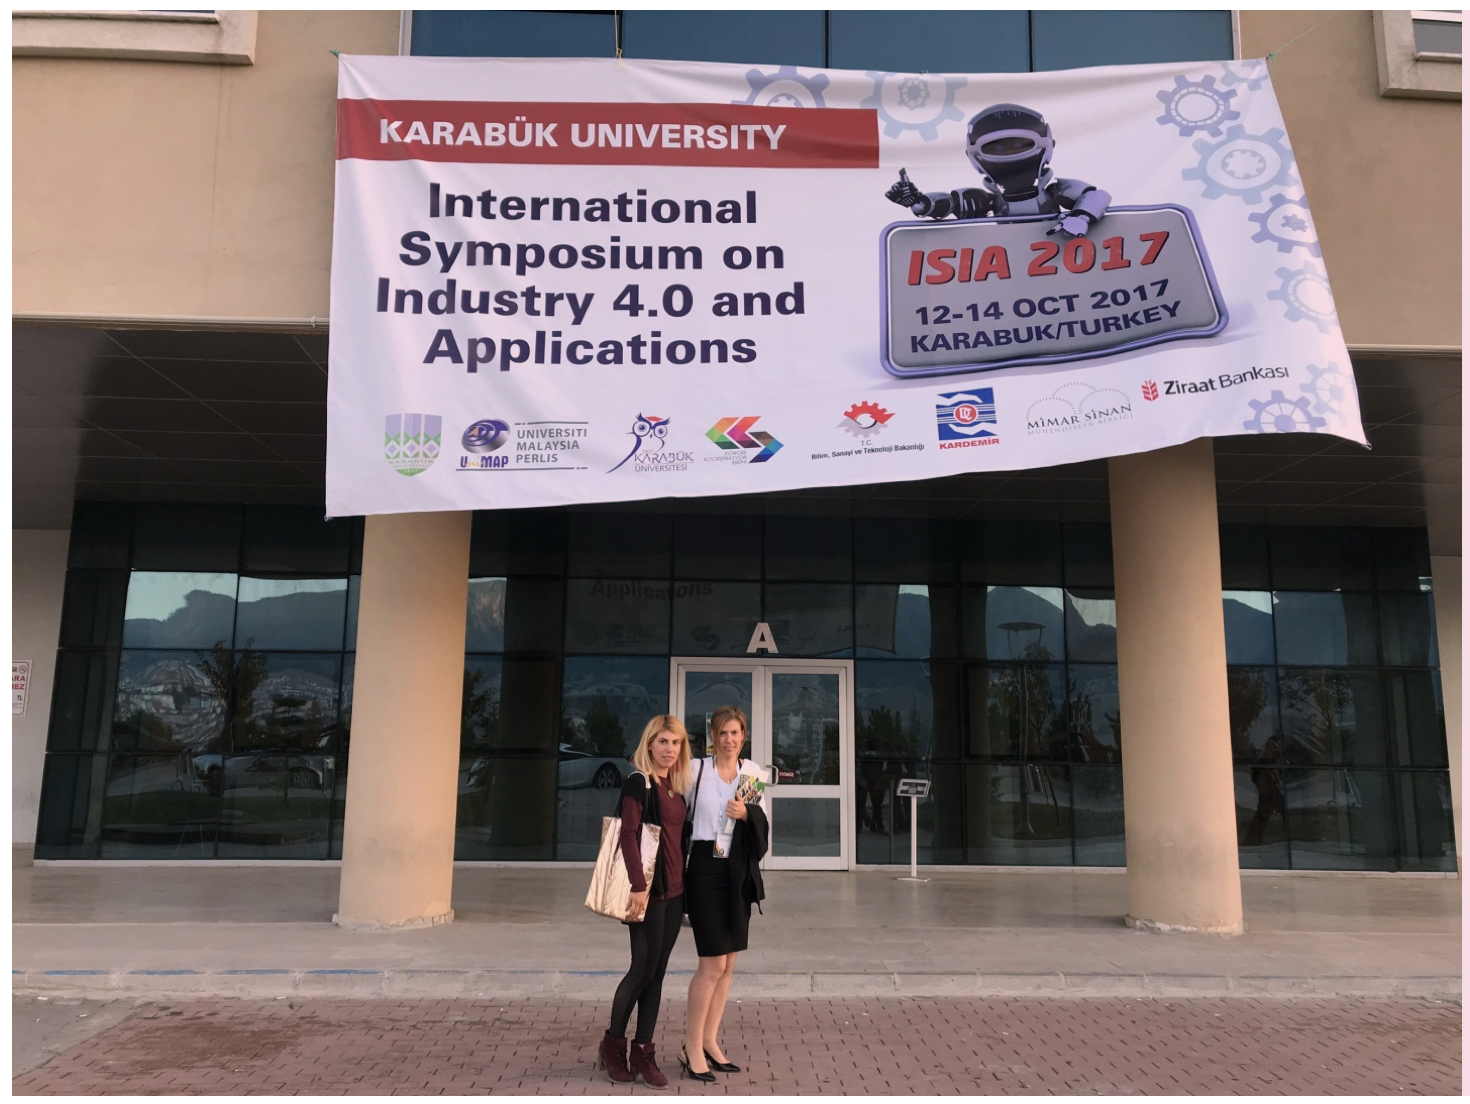 The work of Academic Members of Near East University Faculty of Engineering received a lot of attention at the International Symposium on Industry 4.0 and Applications (ISIA 2017)